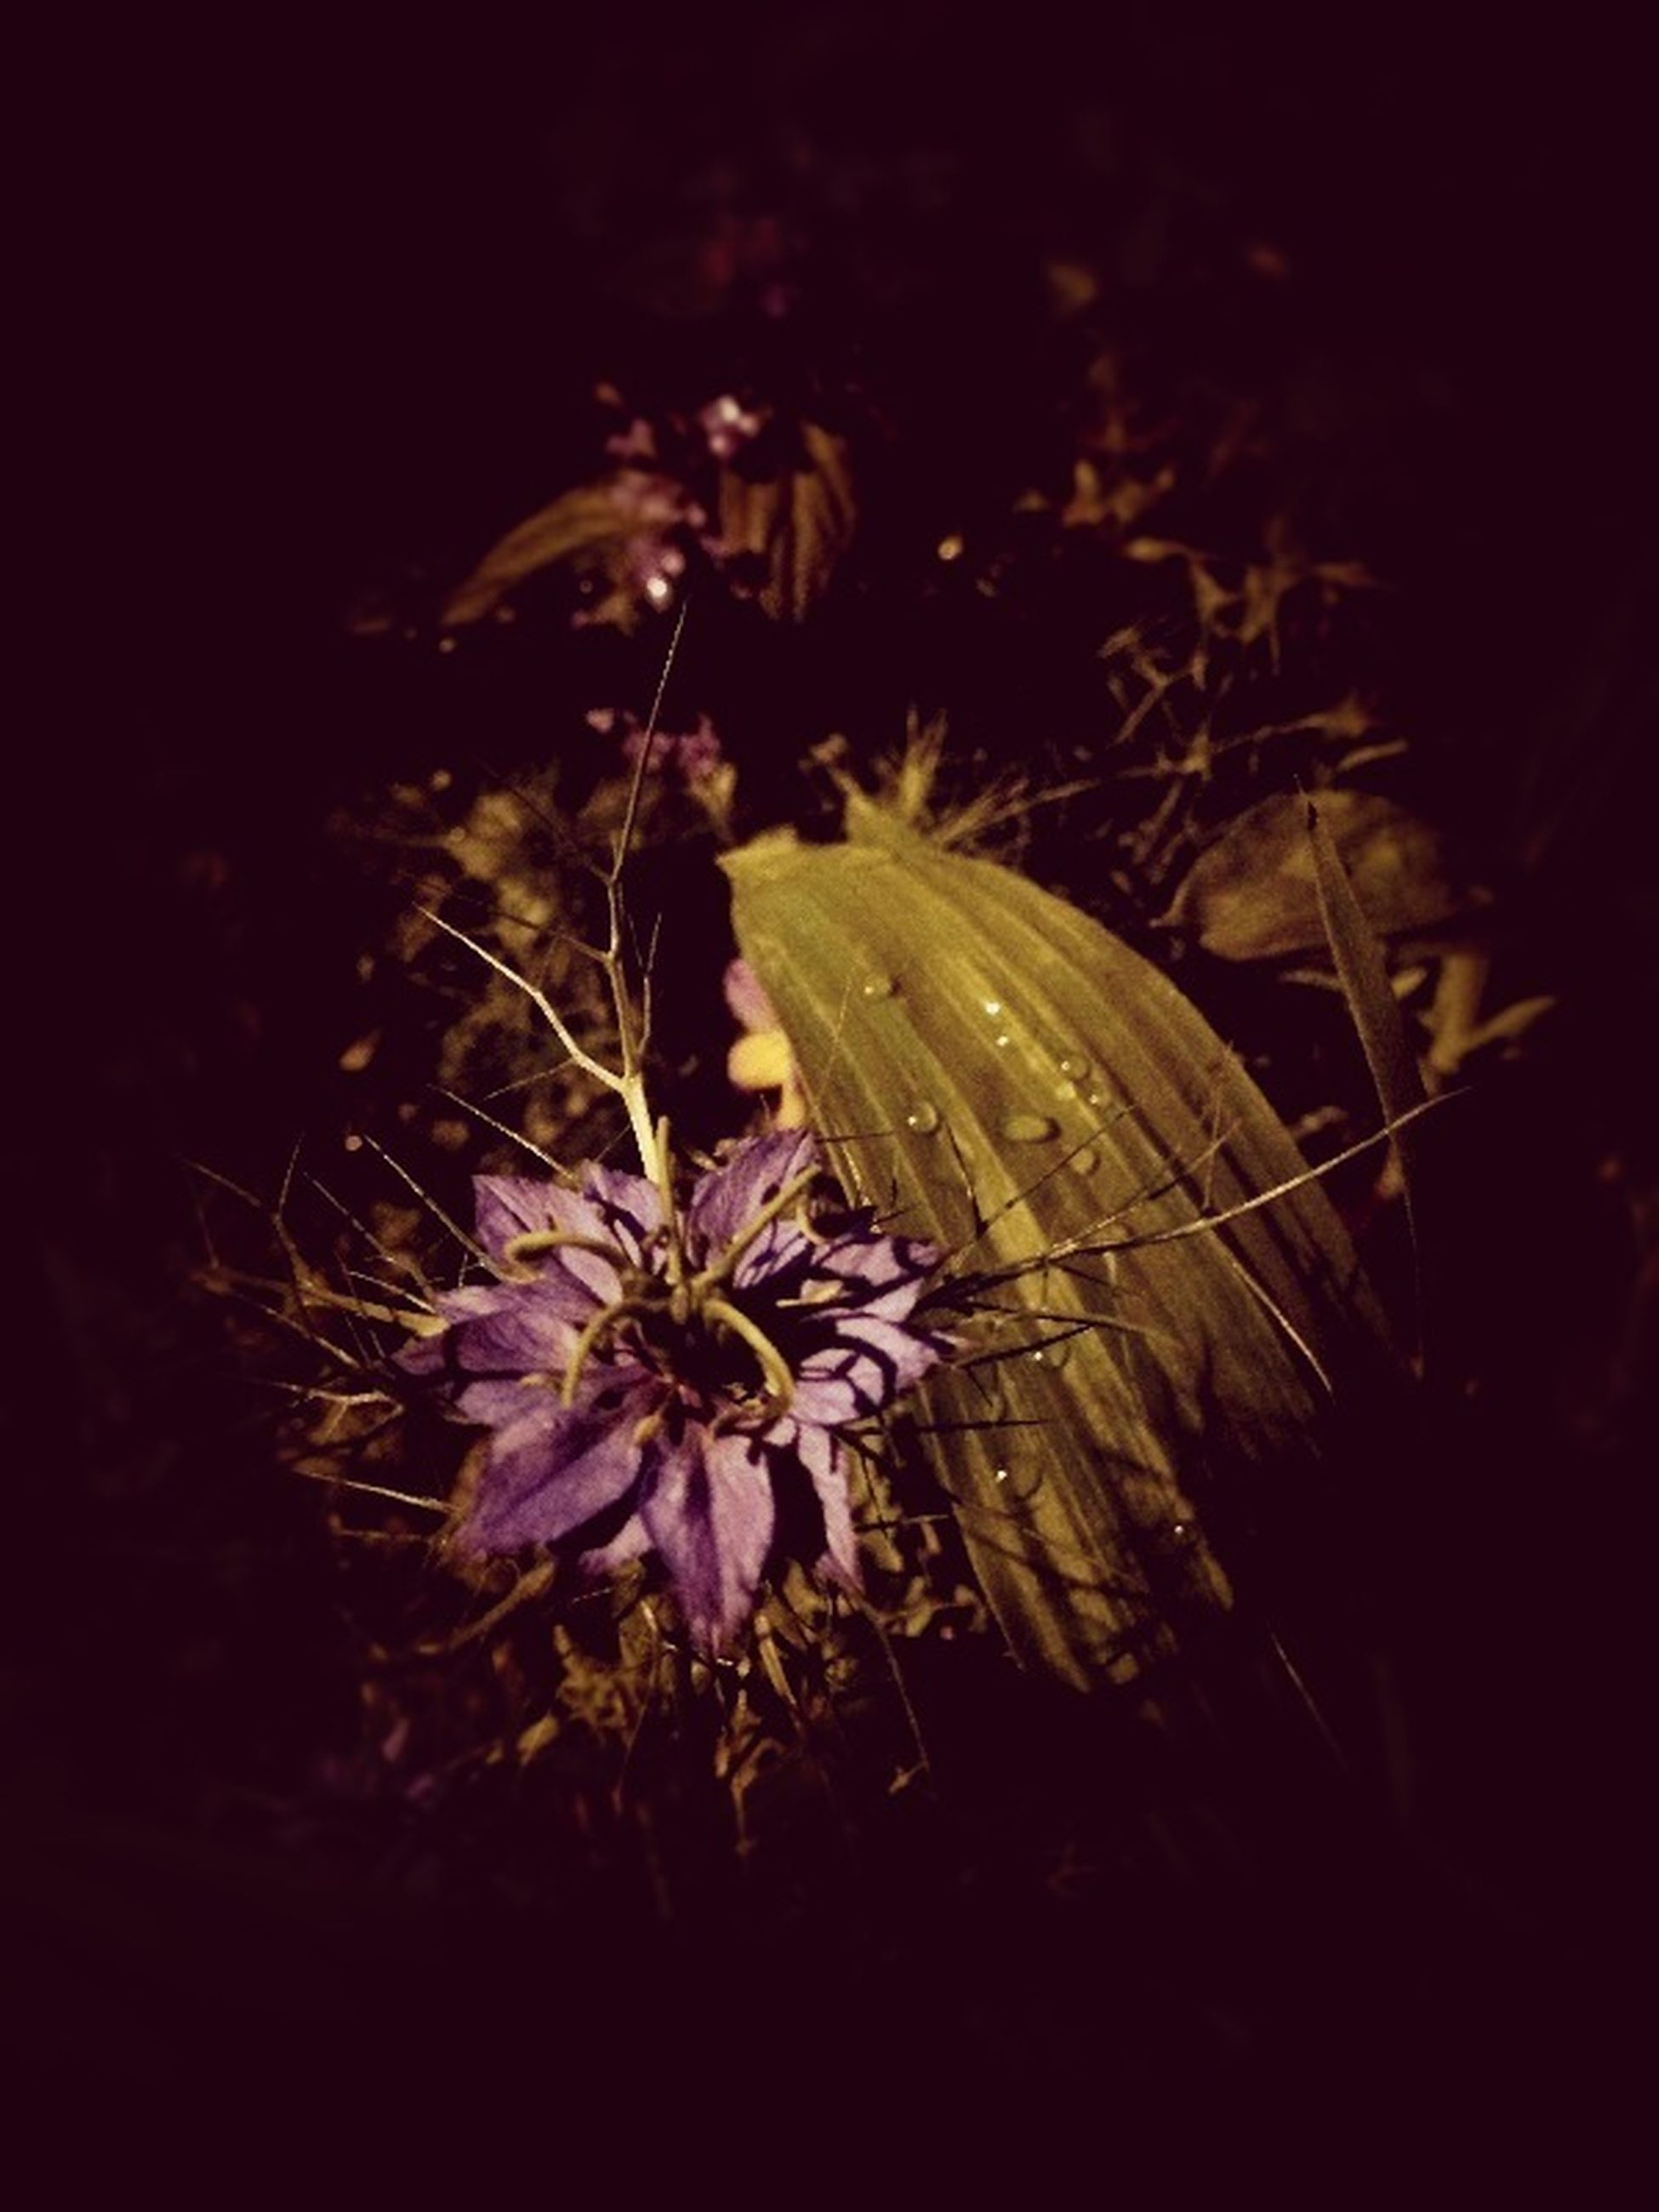 flower, freshness, fragility, growth, petal, flower head, beauty in nature, plant, nature, blooming, close-up, in bloom, single flower, night, focus on foreground, field, blossom, outdoors, stem, botany